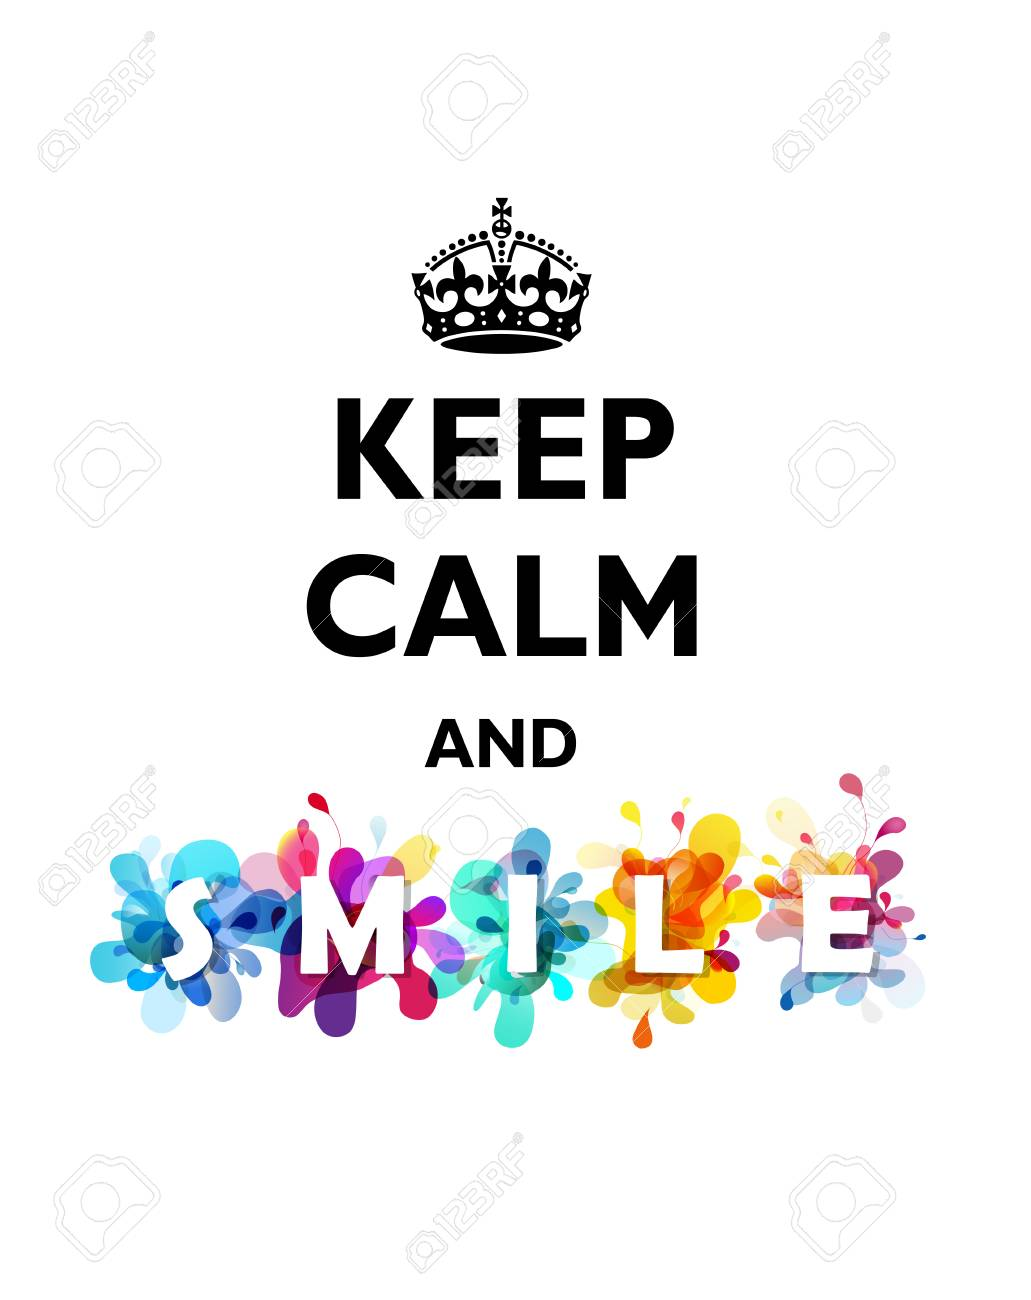 Image result for keep calm and smile